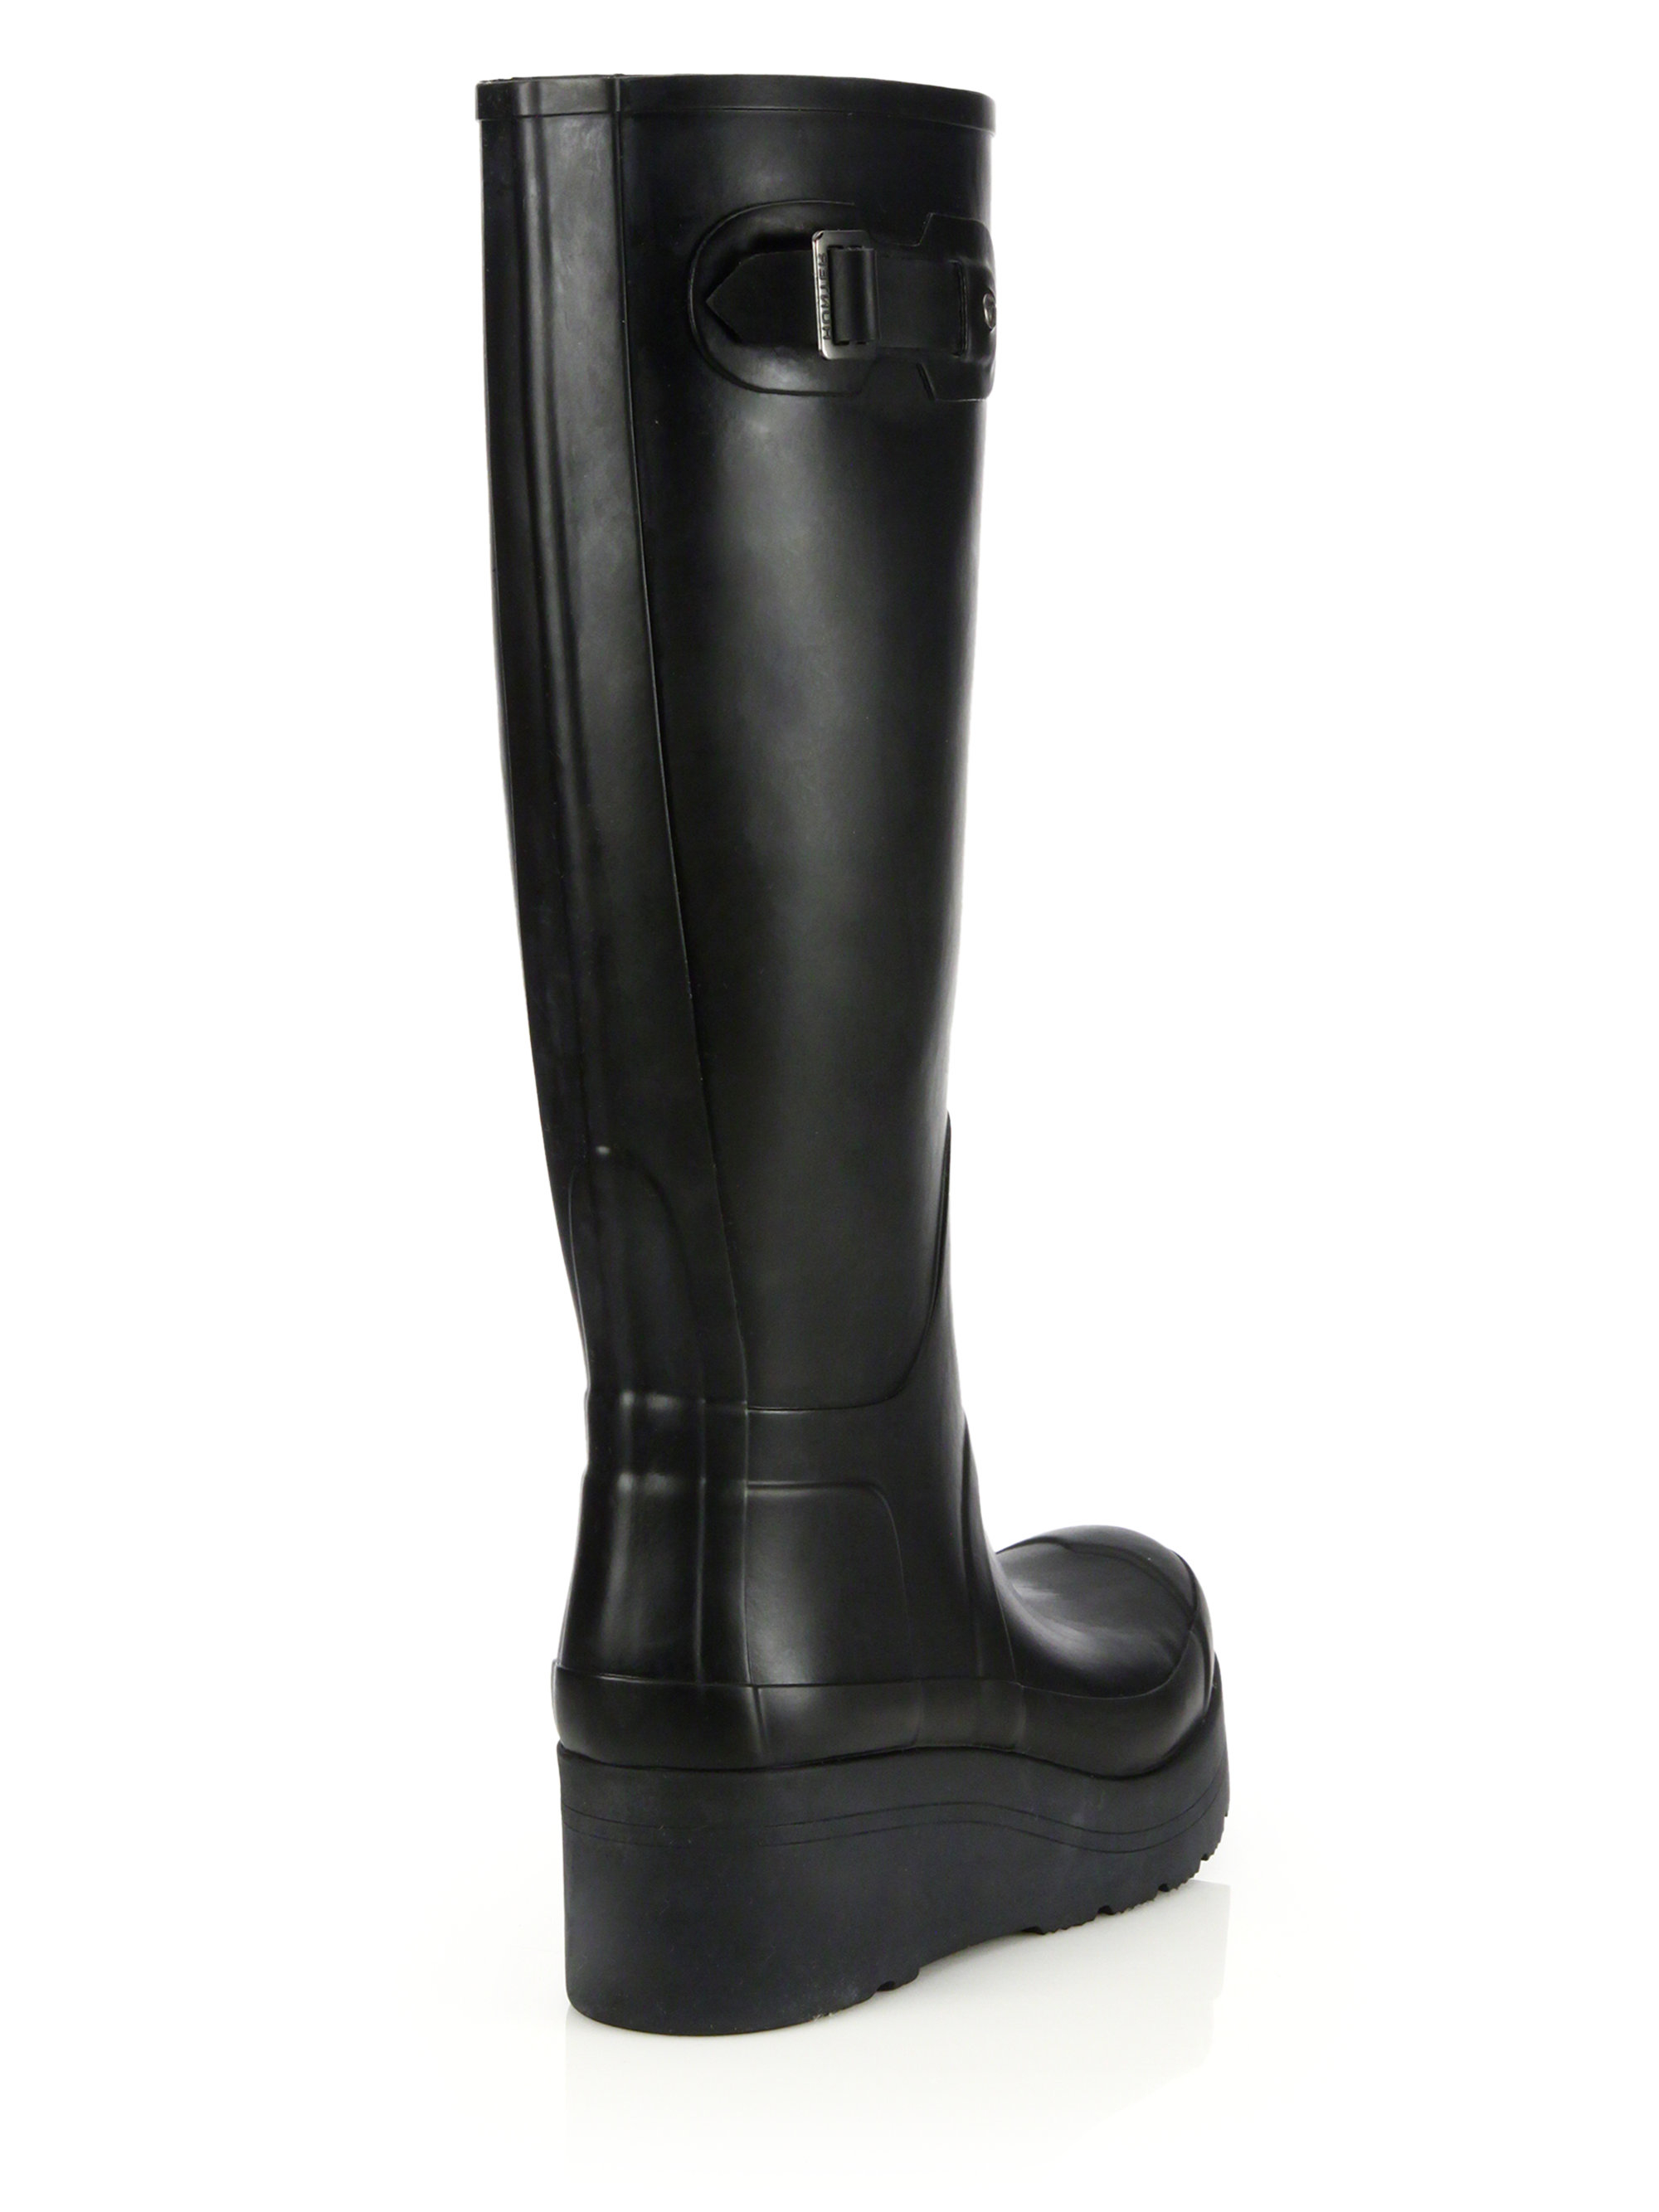 Hunter Original Low Wedge Rain Boots in Black | Lyst